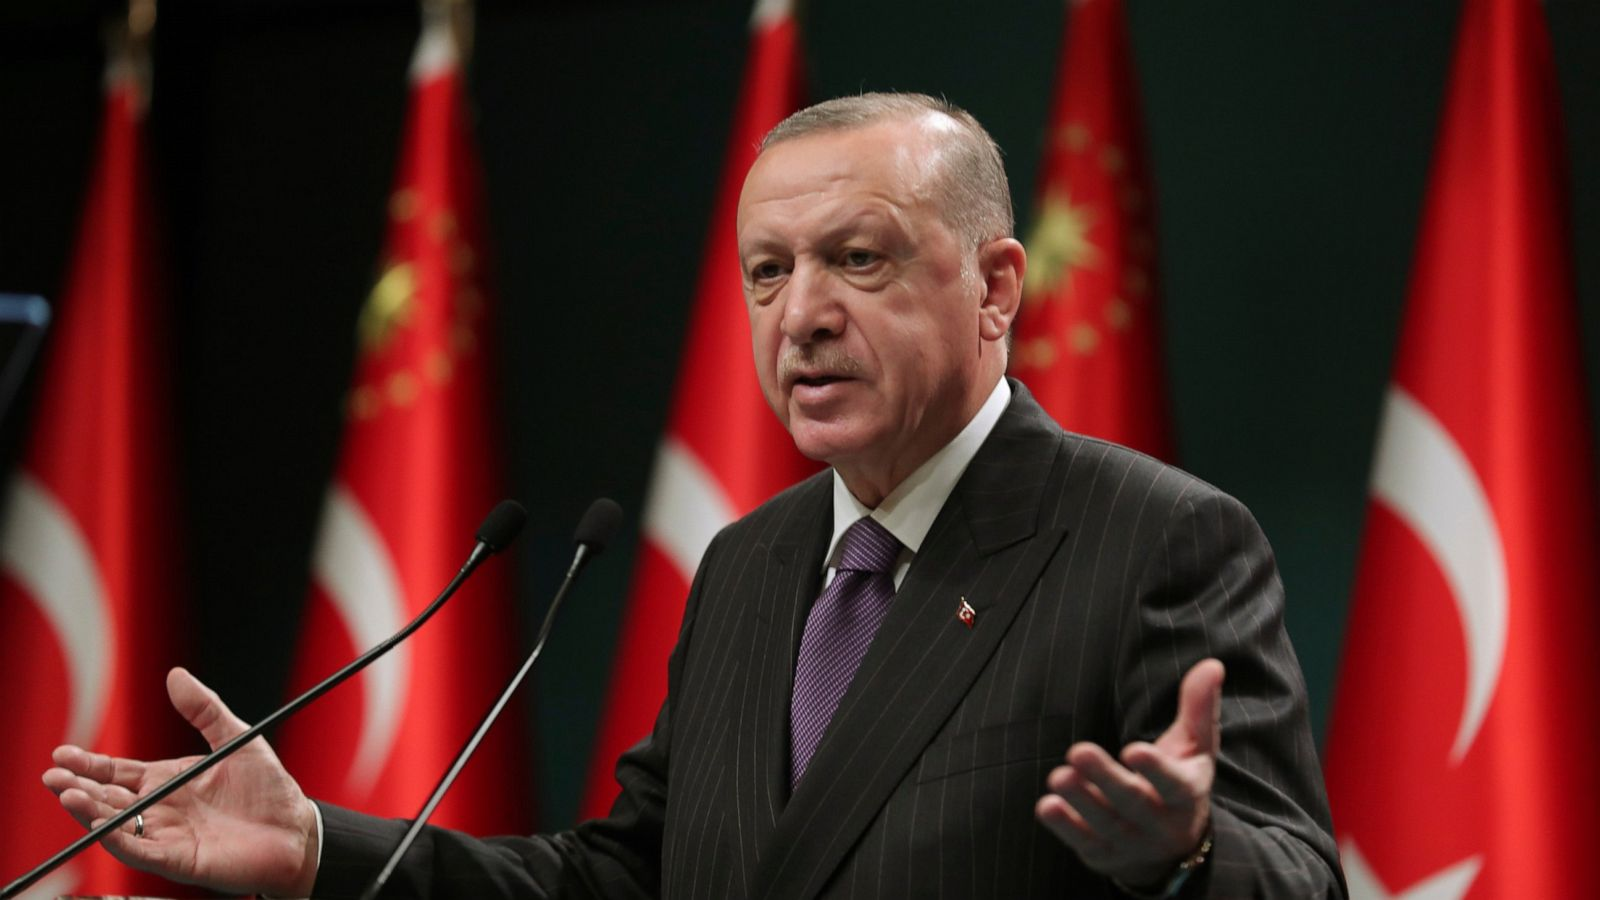 Turkey announces 4-day curfew over New Year's to fight virus - ABC News